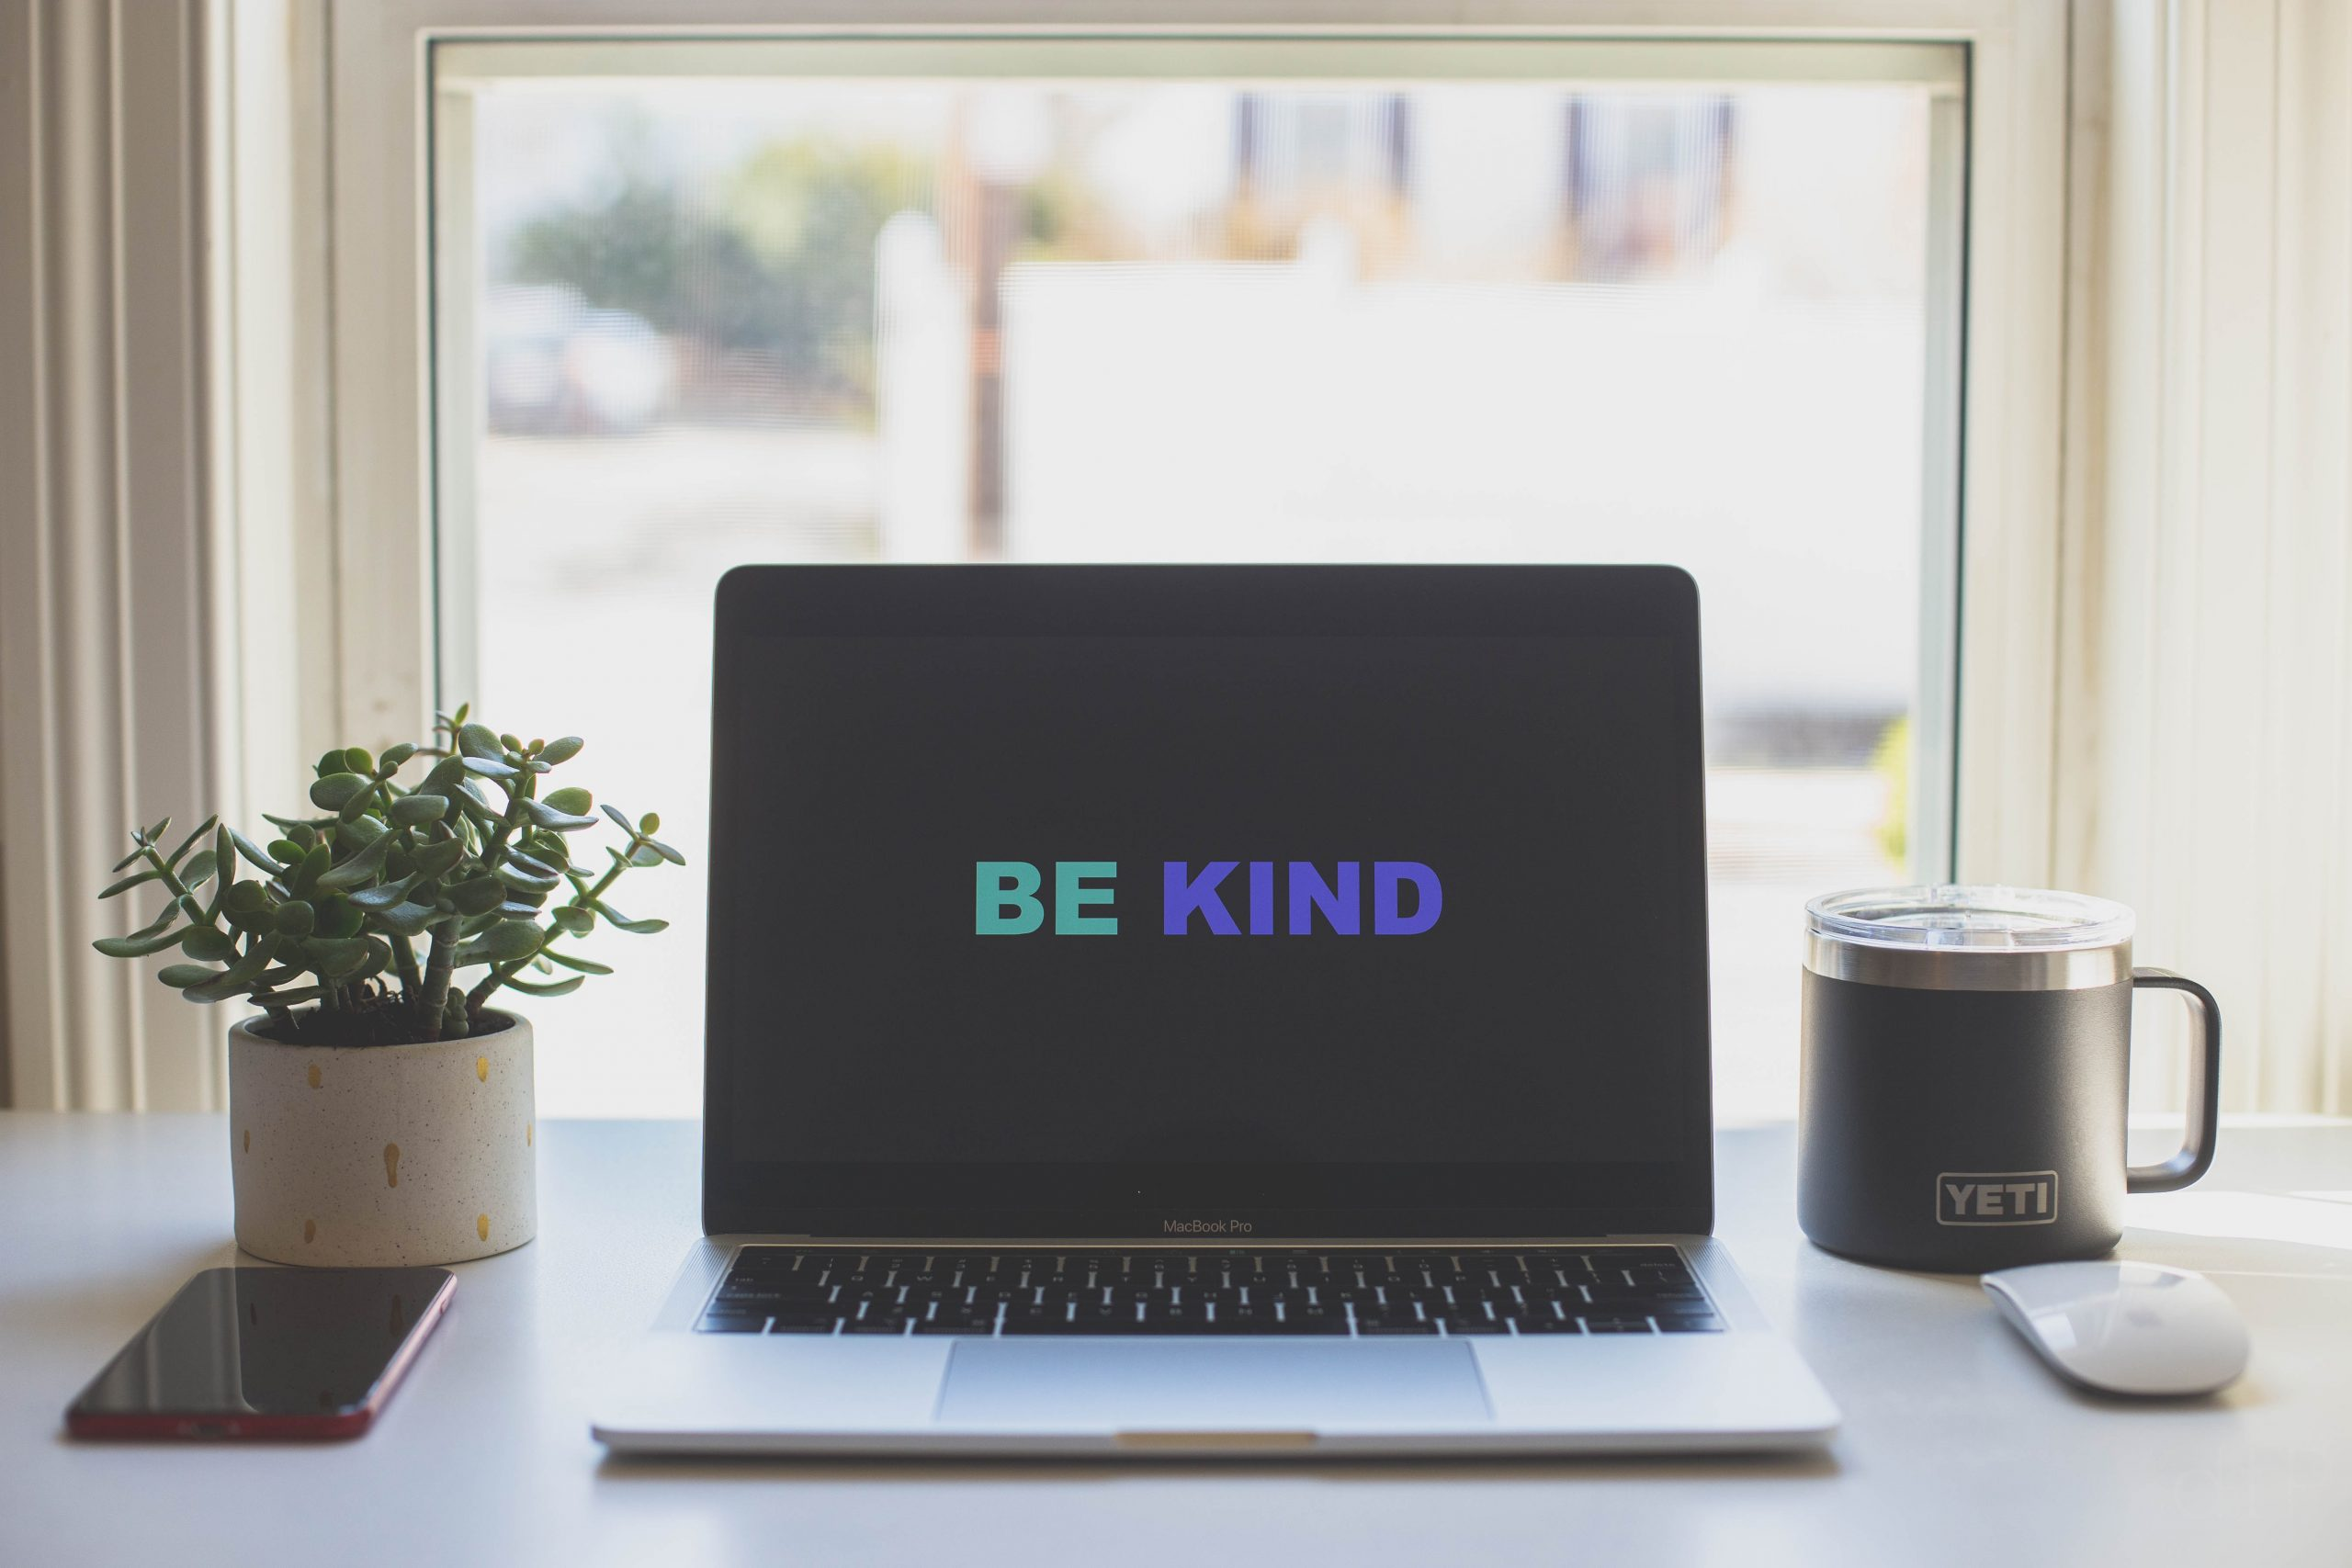 ways to do random acts of kindness